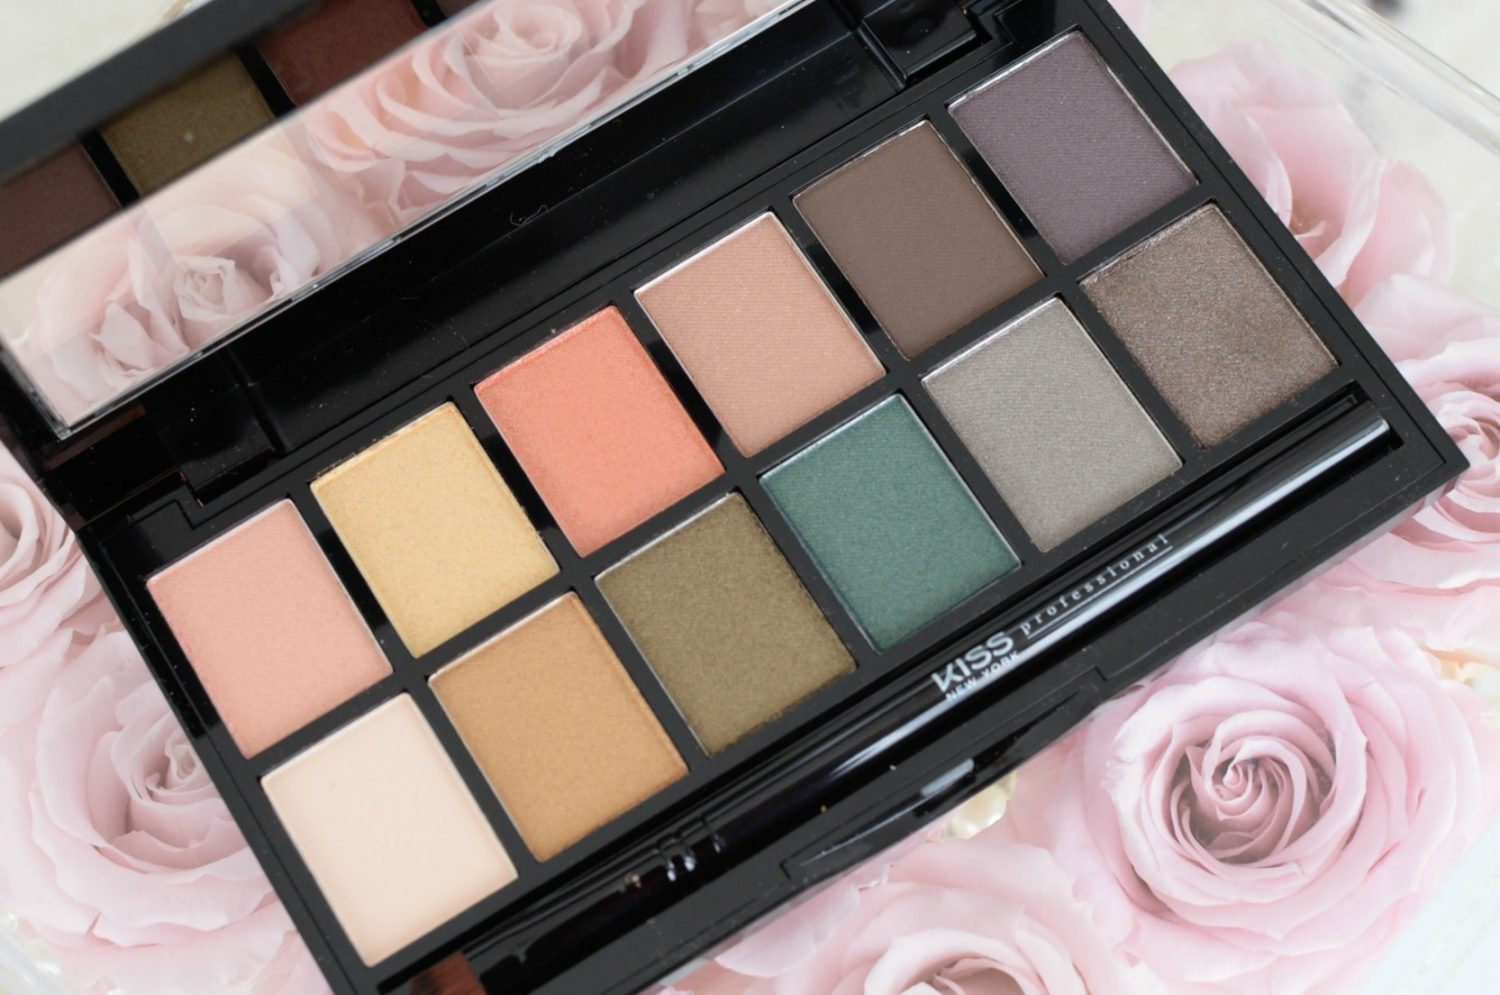 Kiss NY Pro Goddess Eyeshadow Palette | The Pink Millennial